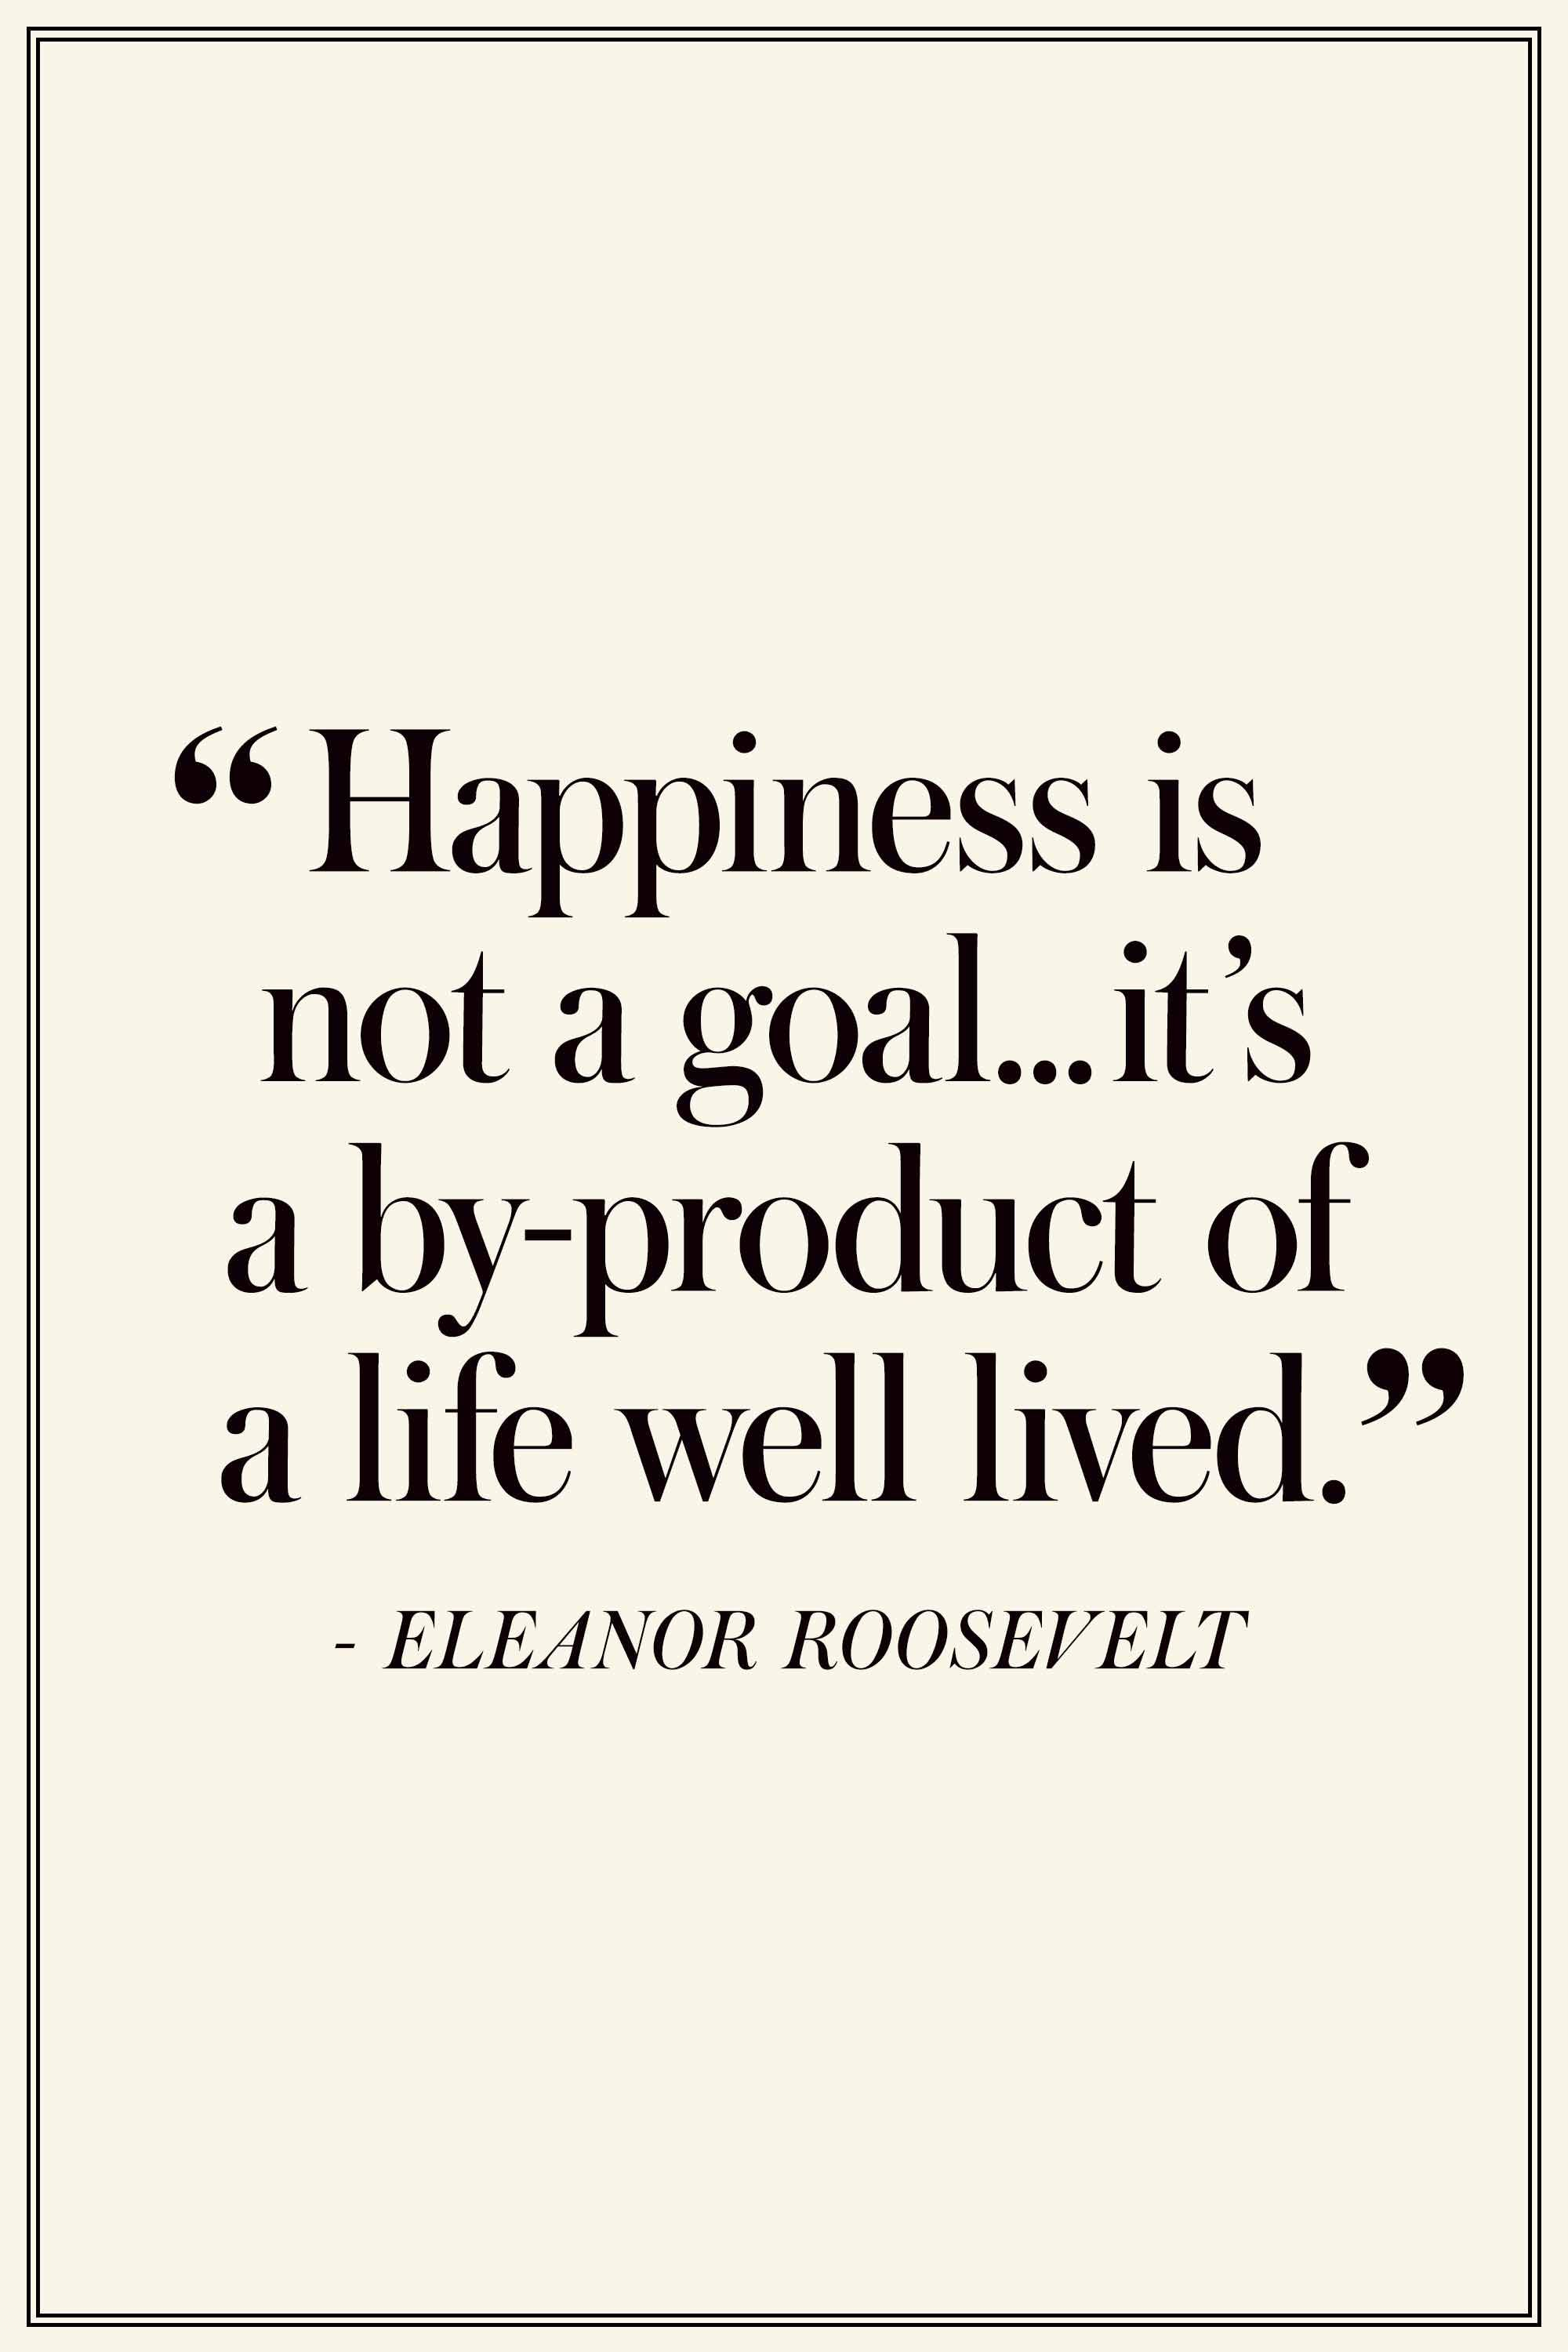 Eleanor Roosevelt Quotes Marines Best Quotes On Happiness  Famous Quotes About Happiness